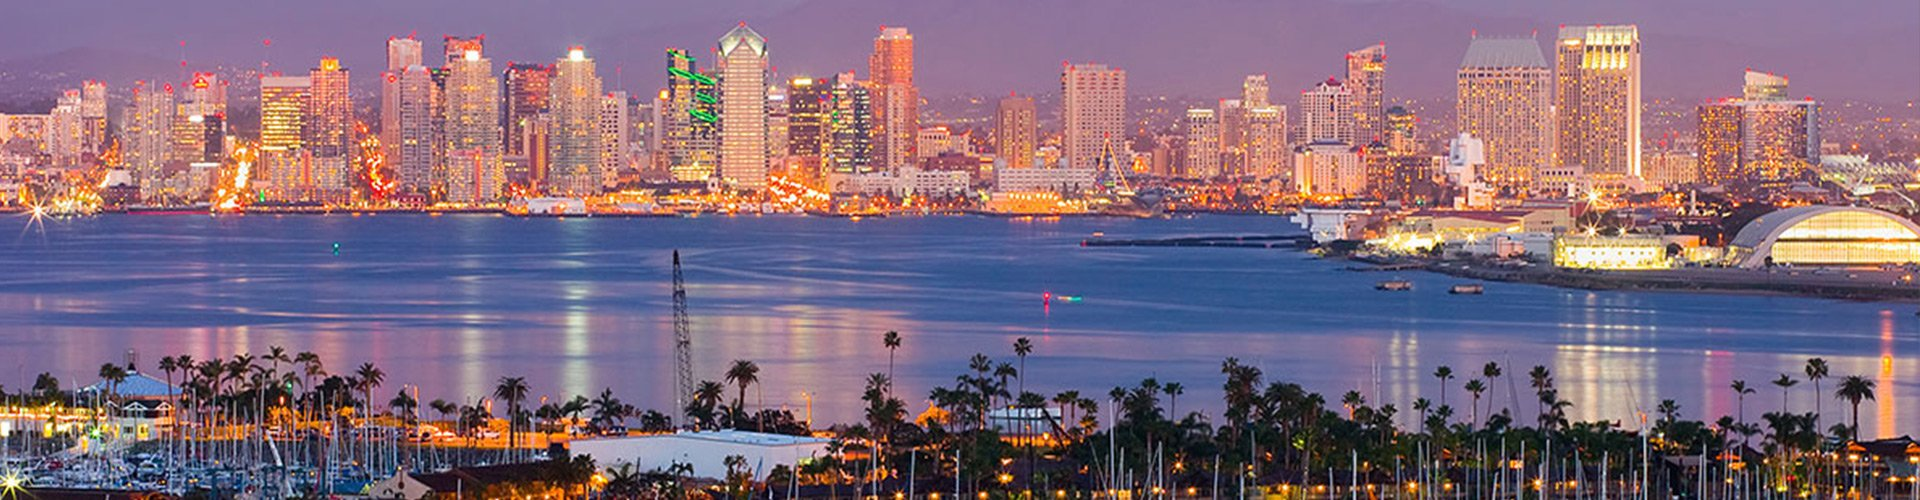 San Diego Secure Guard Security Services In